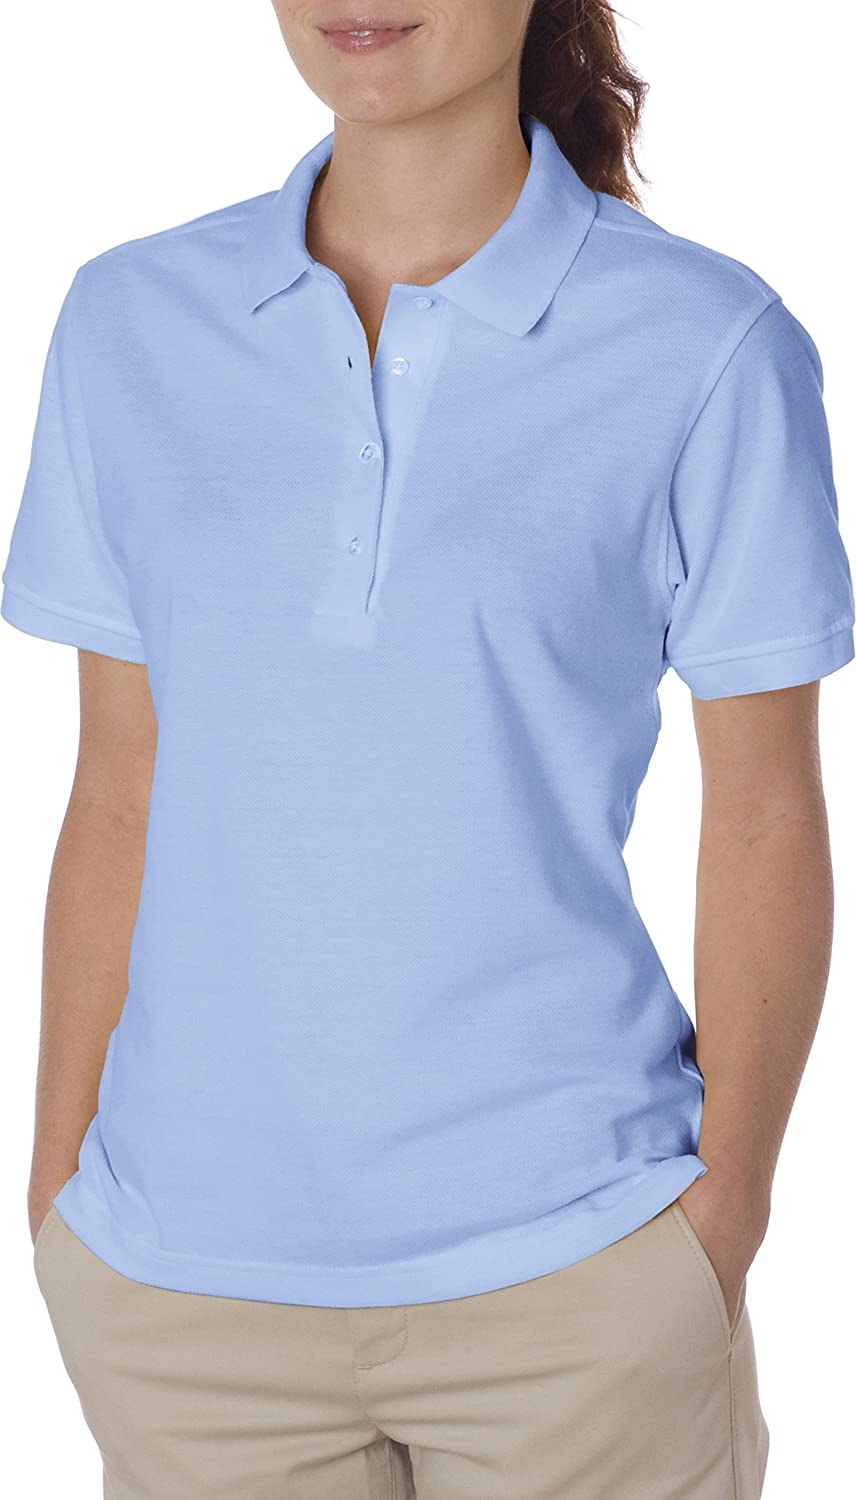 Jerzees Ladies' Jersey Polo with SpotShield at Amazon Women's Clothing  store: